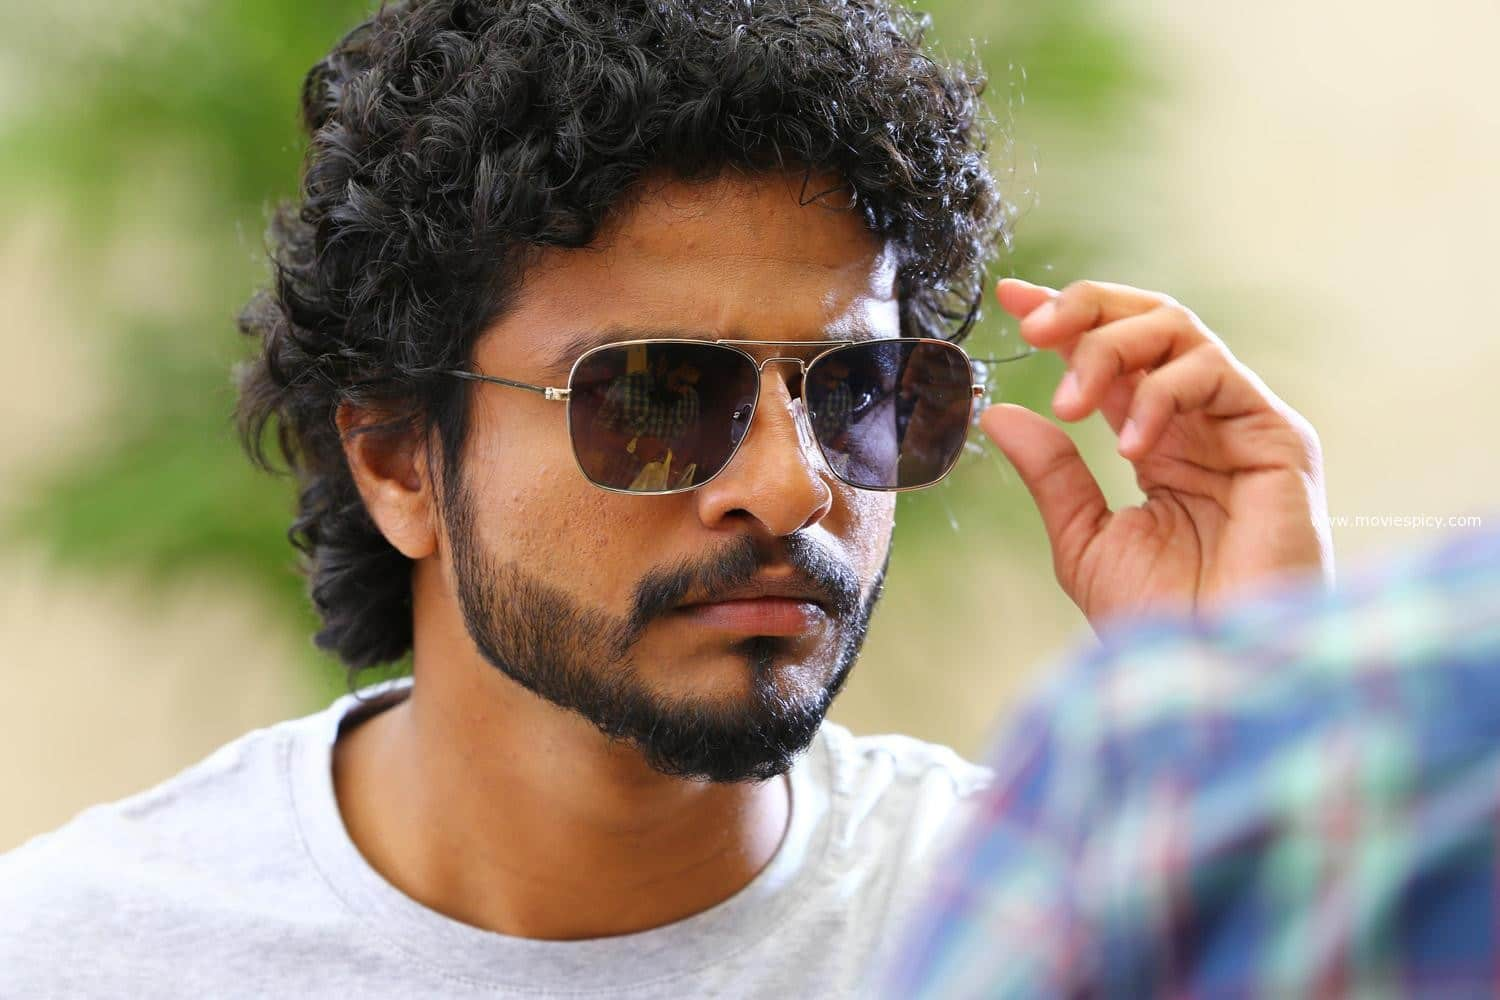 Neeraj Madhav Roped In For Jeethu Joseph's Next